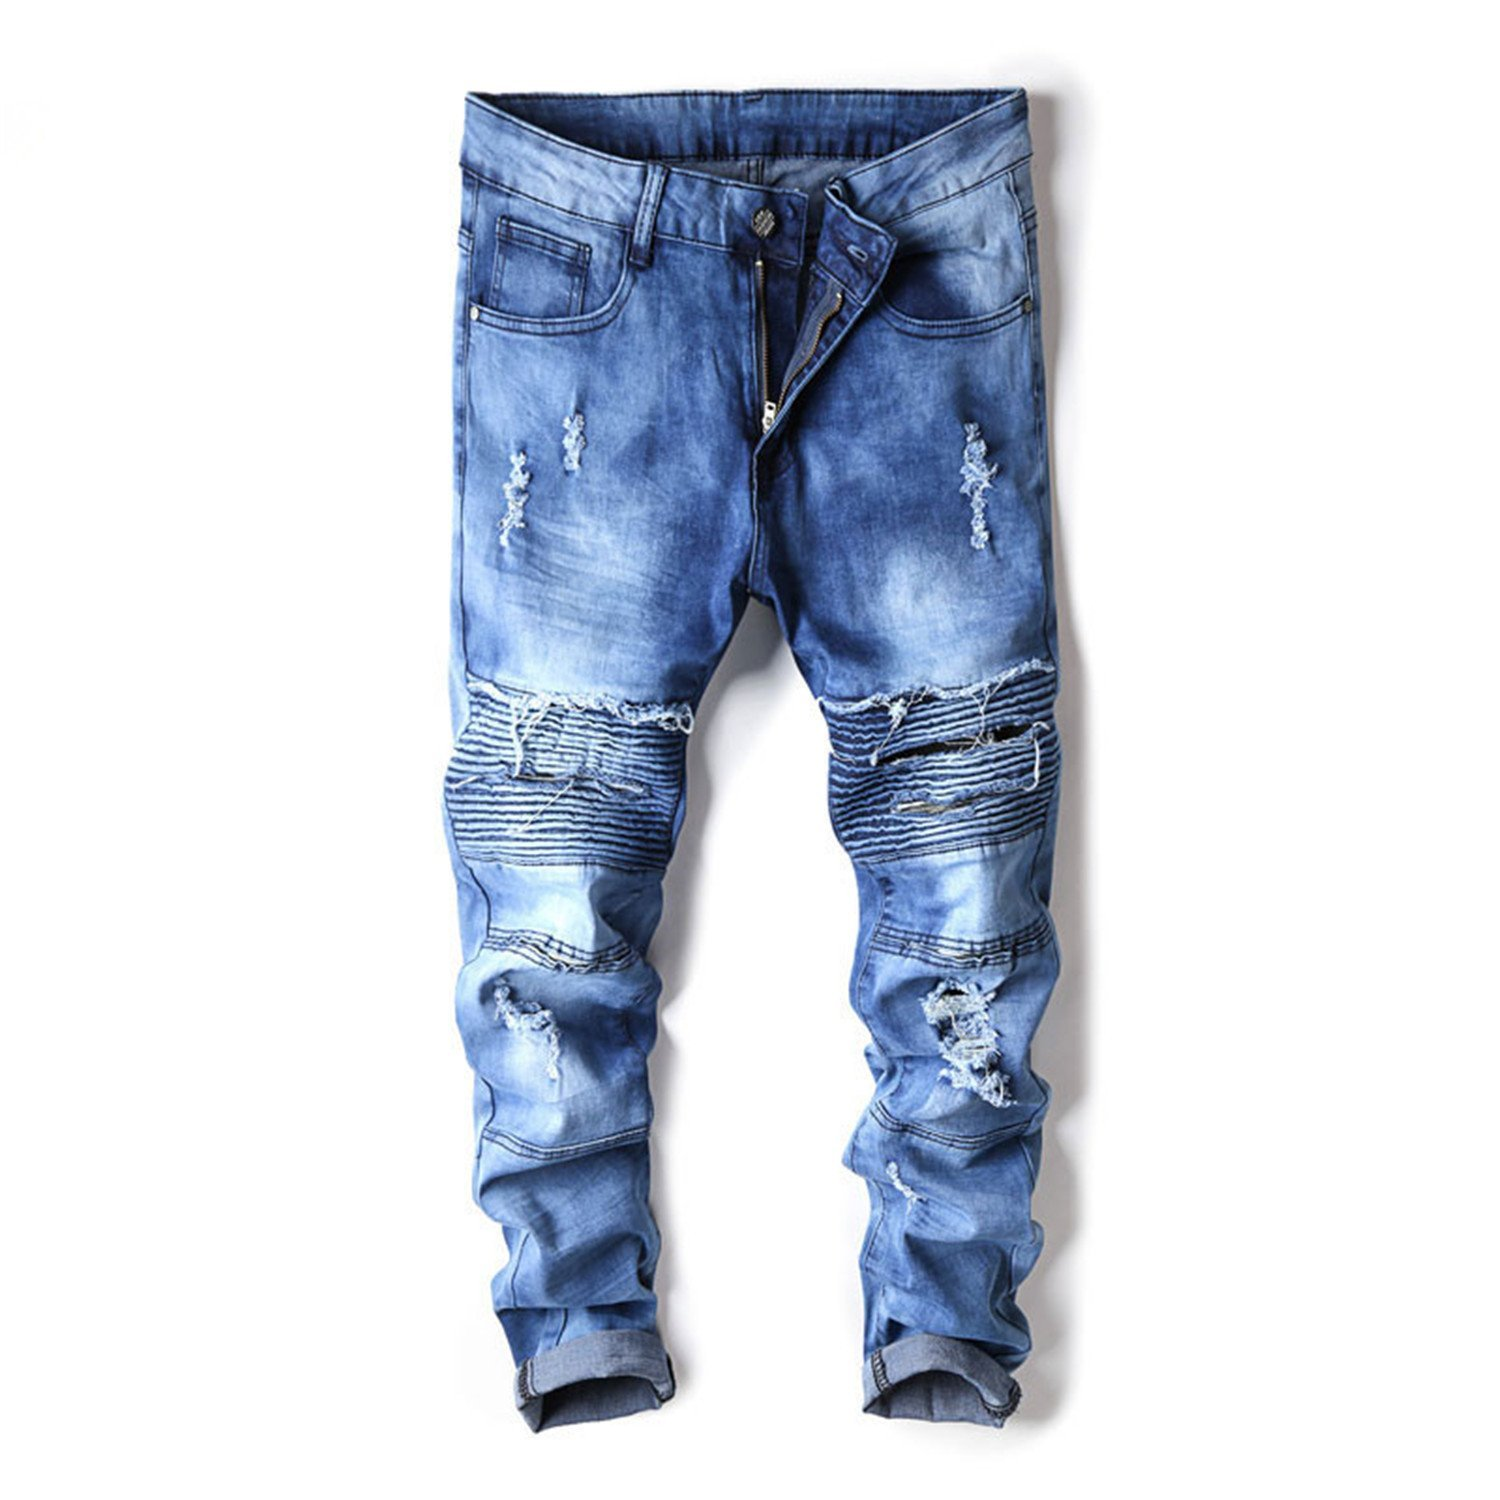 a81c56f19c9 Get Quotations · George Gouge Mens Jeans Fashion New Destroyed Biker Jeans  Men Fashion High Street Ripped Jeans Slim